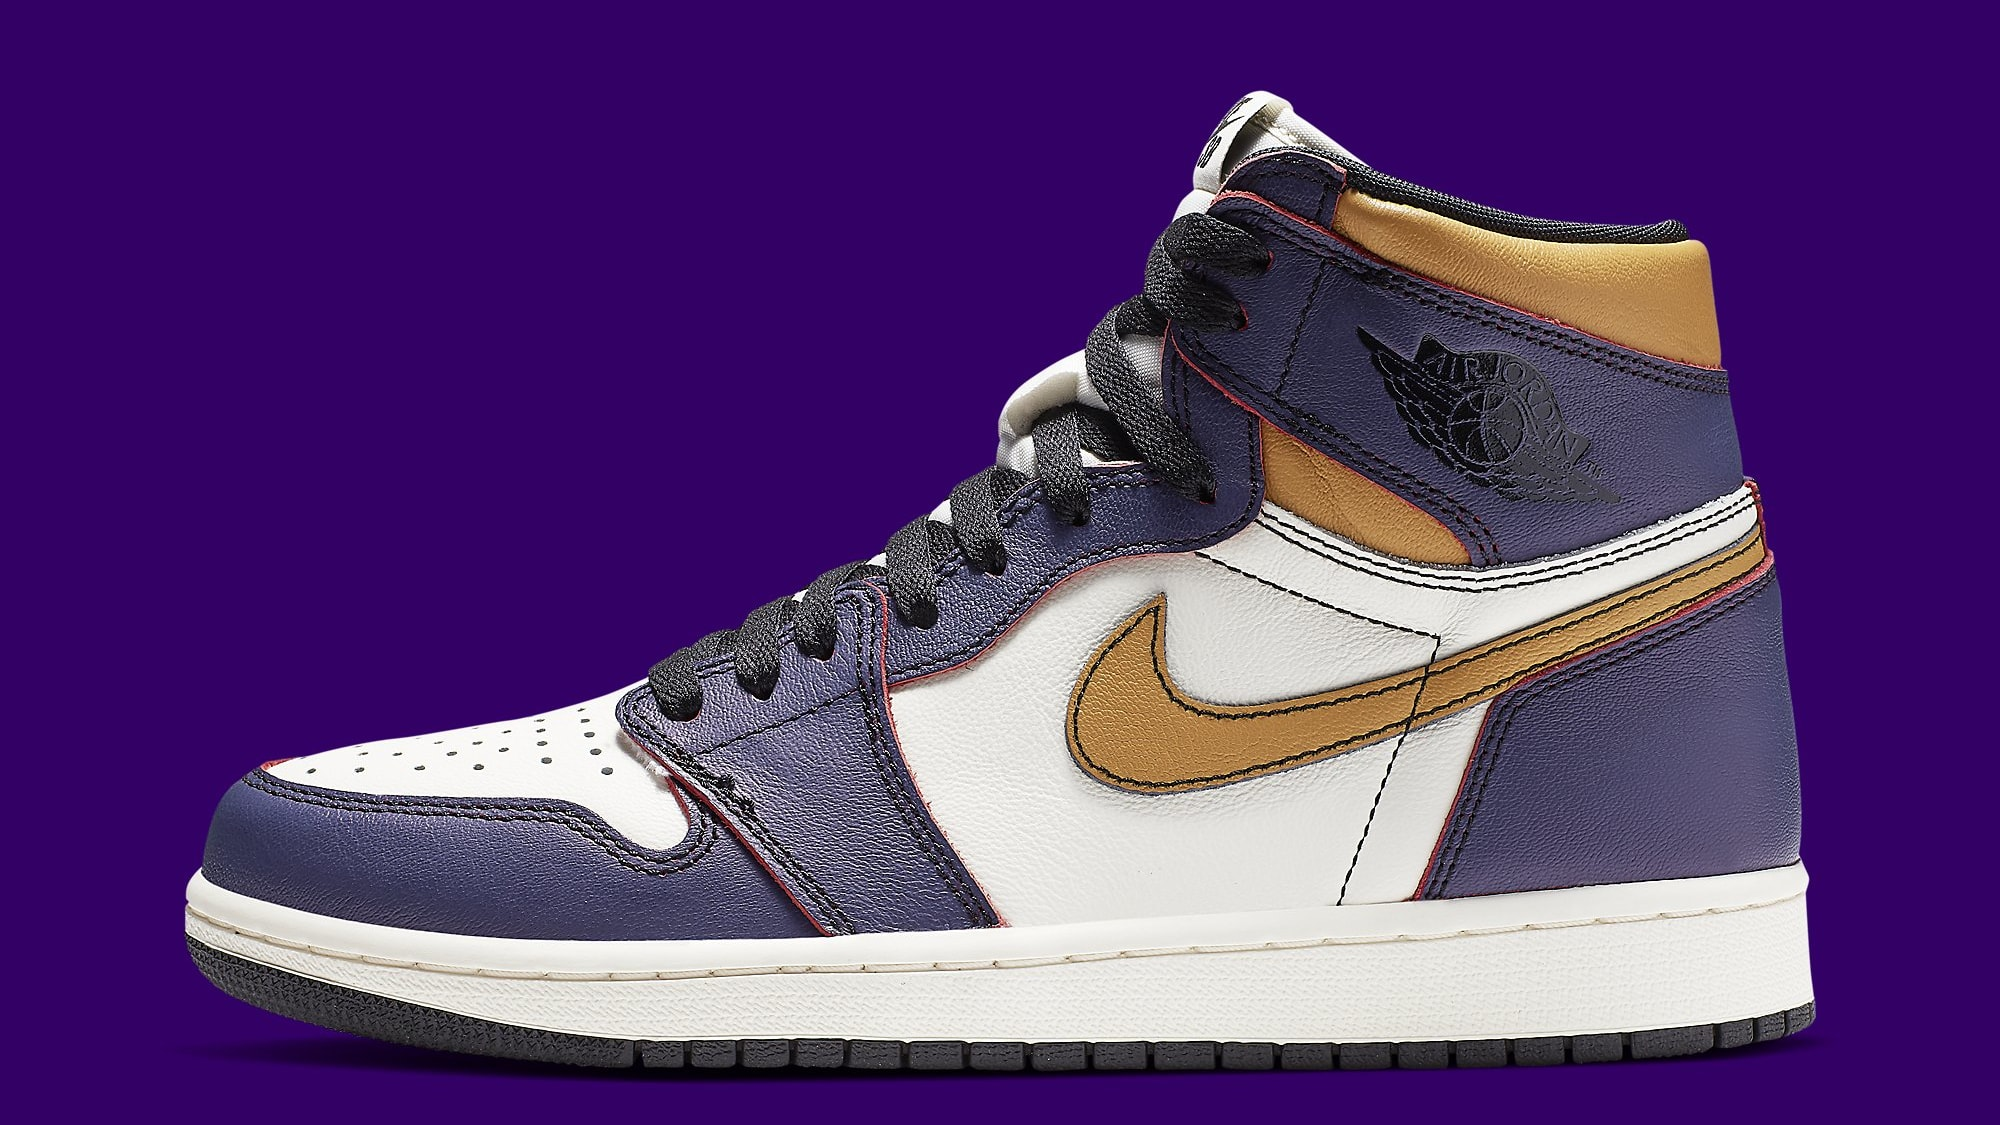 An Official Look at the Upcoming Nike SB x Air Jordan 1 Collab